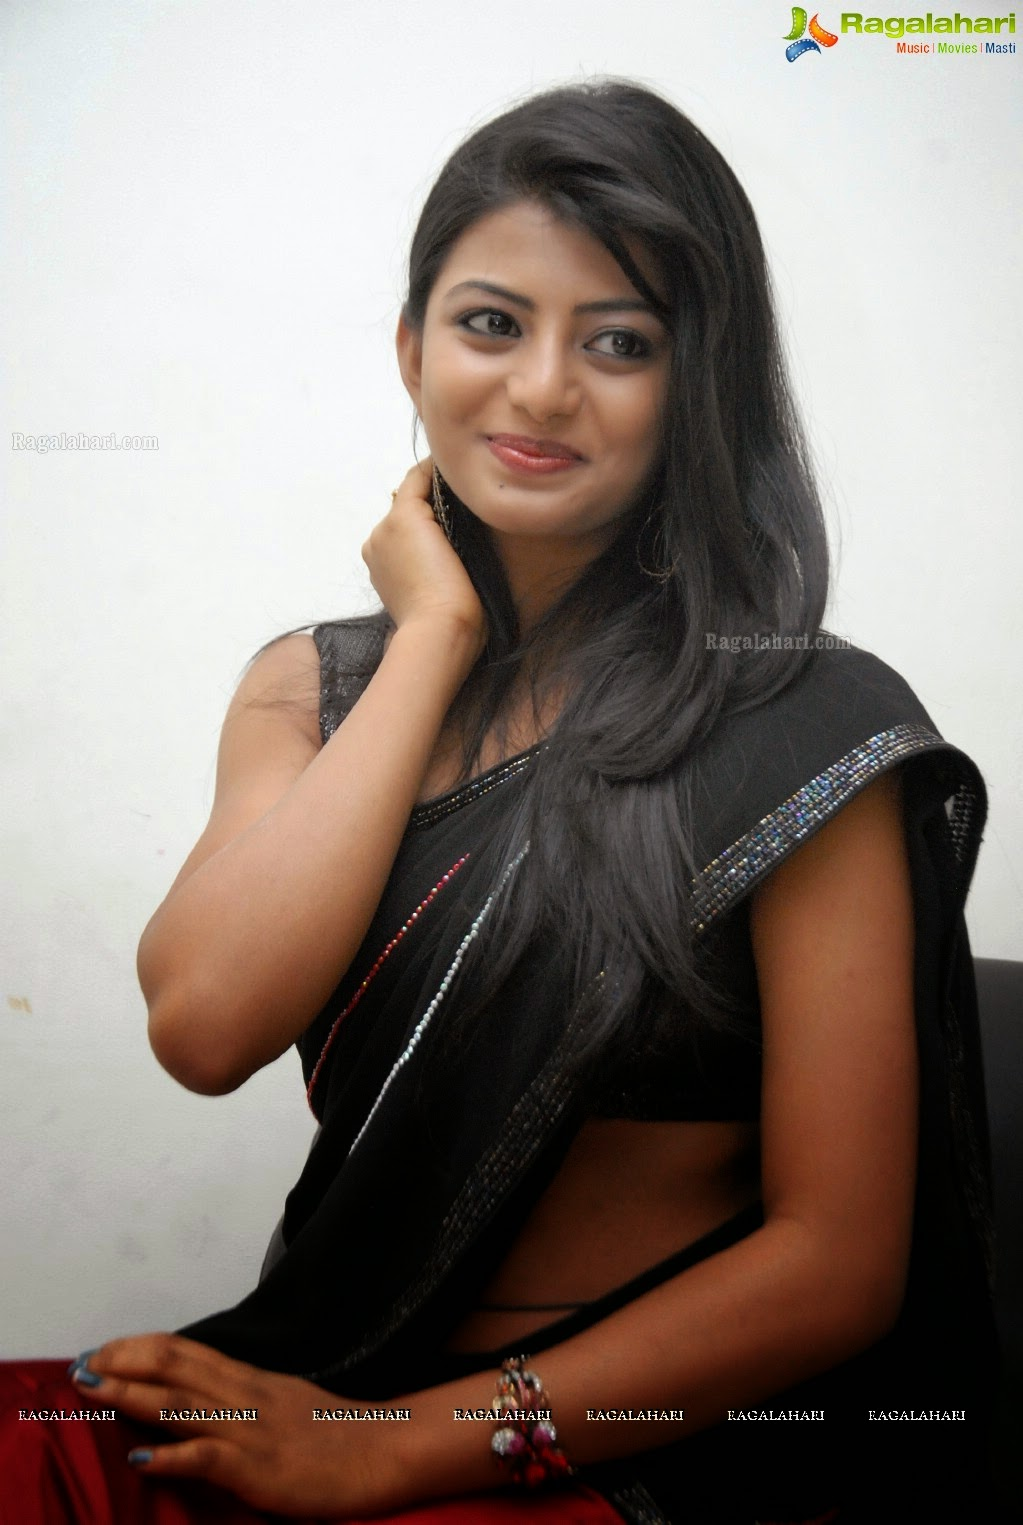 39 kayal 39 anandhi actresses cute beautiful hot sexy for Lovely hot pic